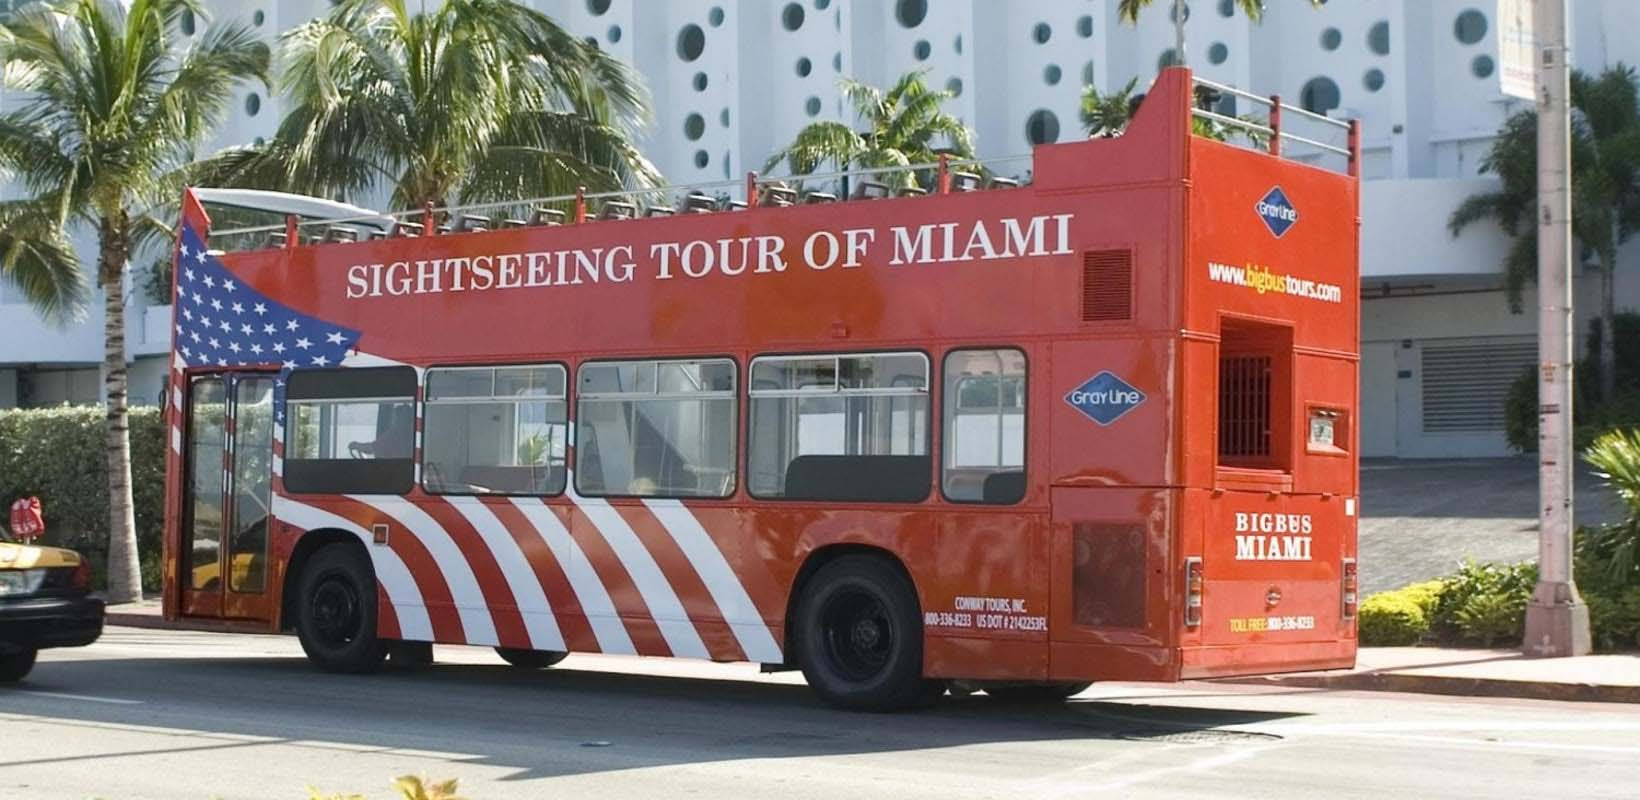 Hop-on hop-off sightseeing tour 24-hour pass